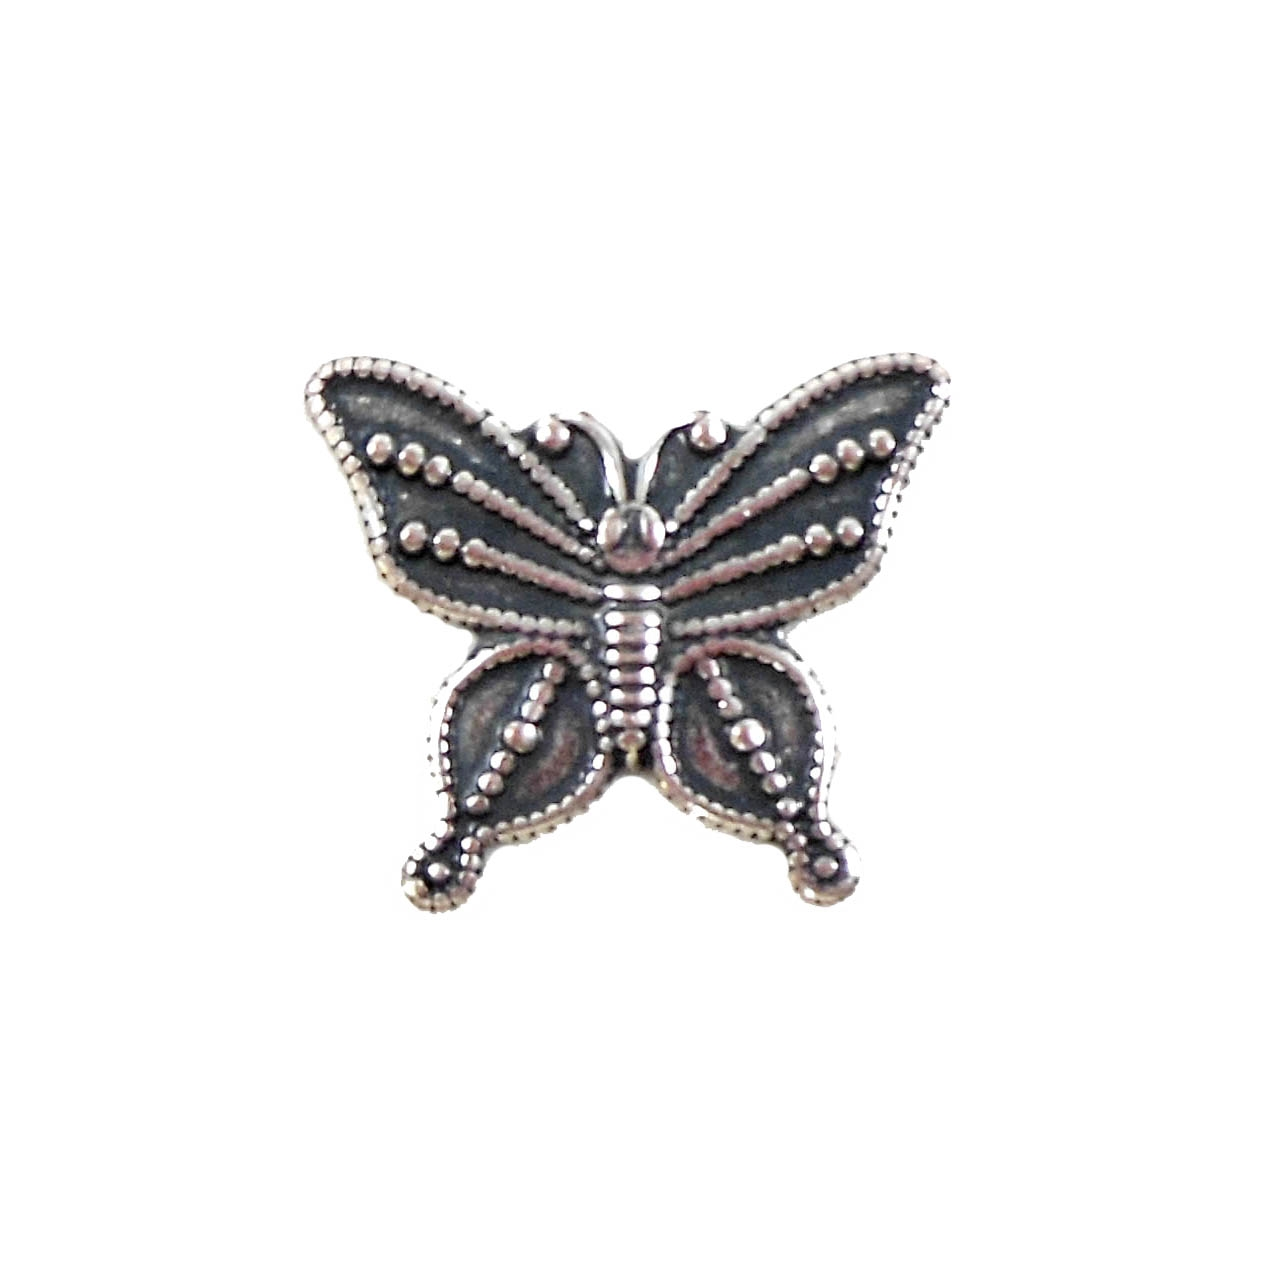 butterfly stampings, silverware silver plate, antique silver, 16 x 19mm, butterfly, 03907, animals, critters, insects, Bsue Boutiques, jewelry supplies, butterfly jewelry